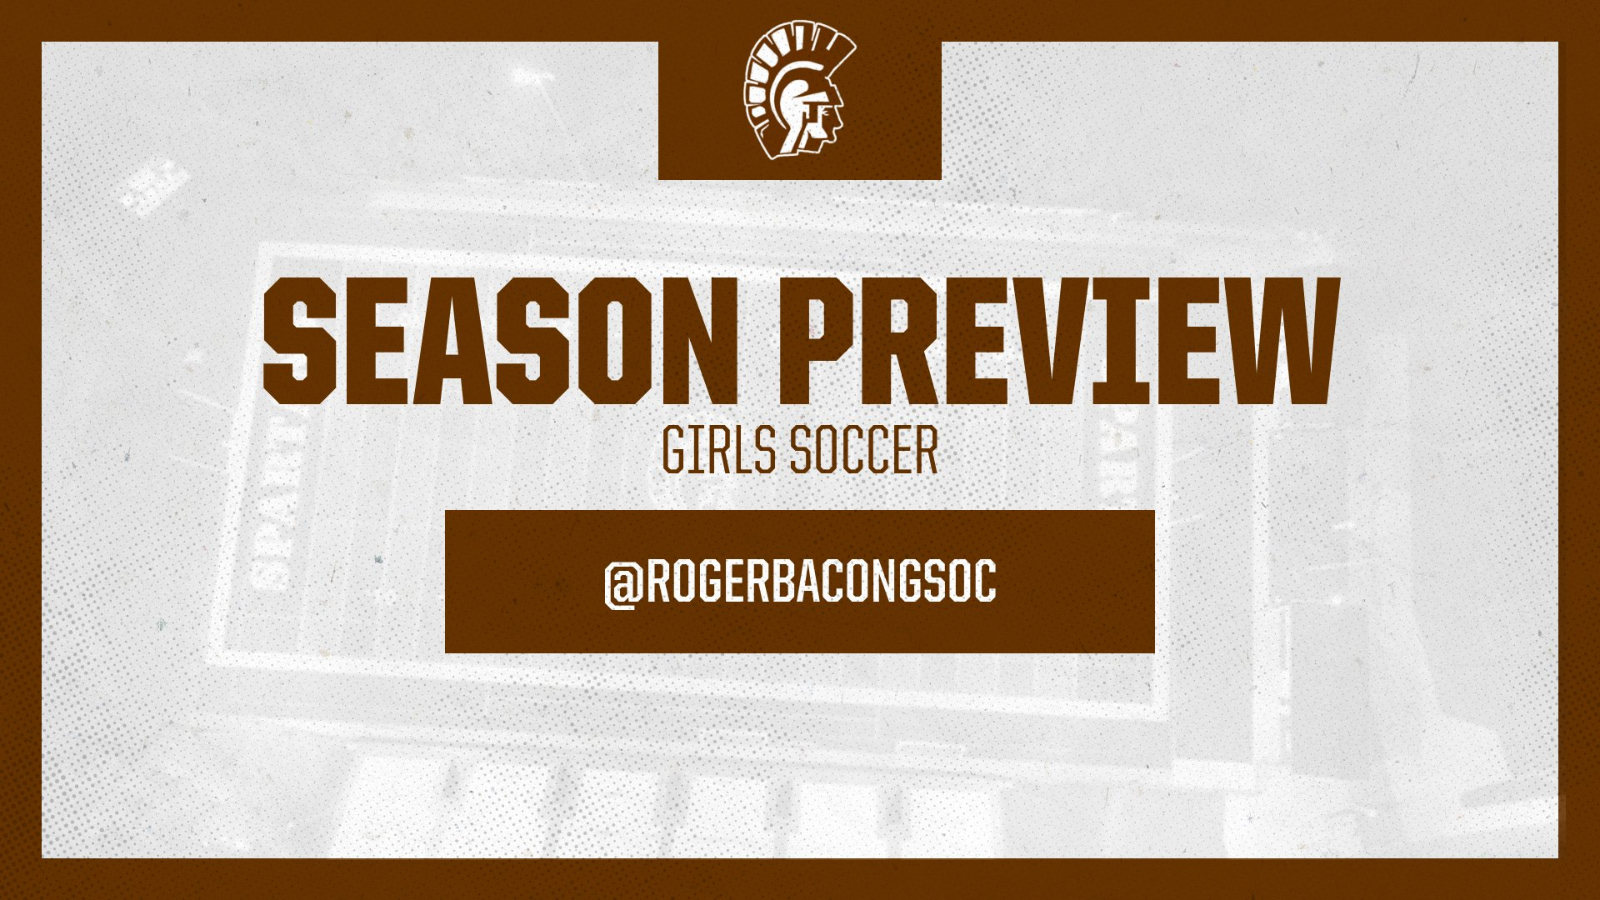 Season Preview: Girls Soccer